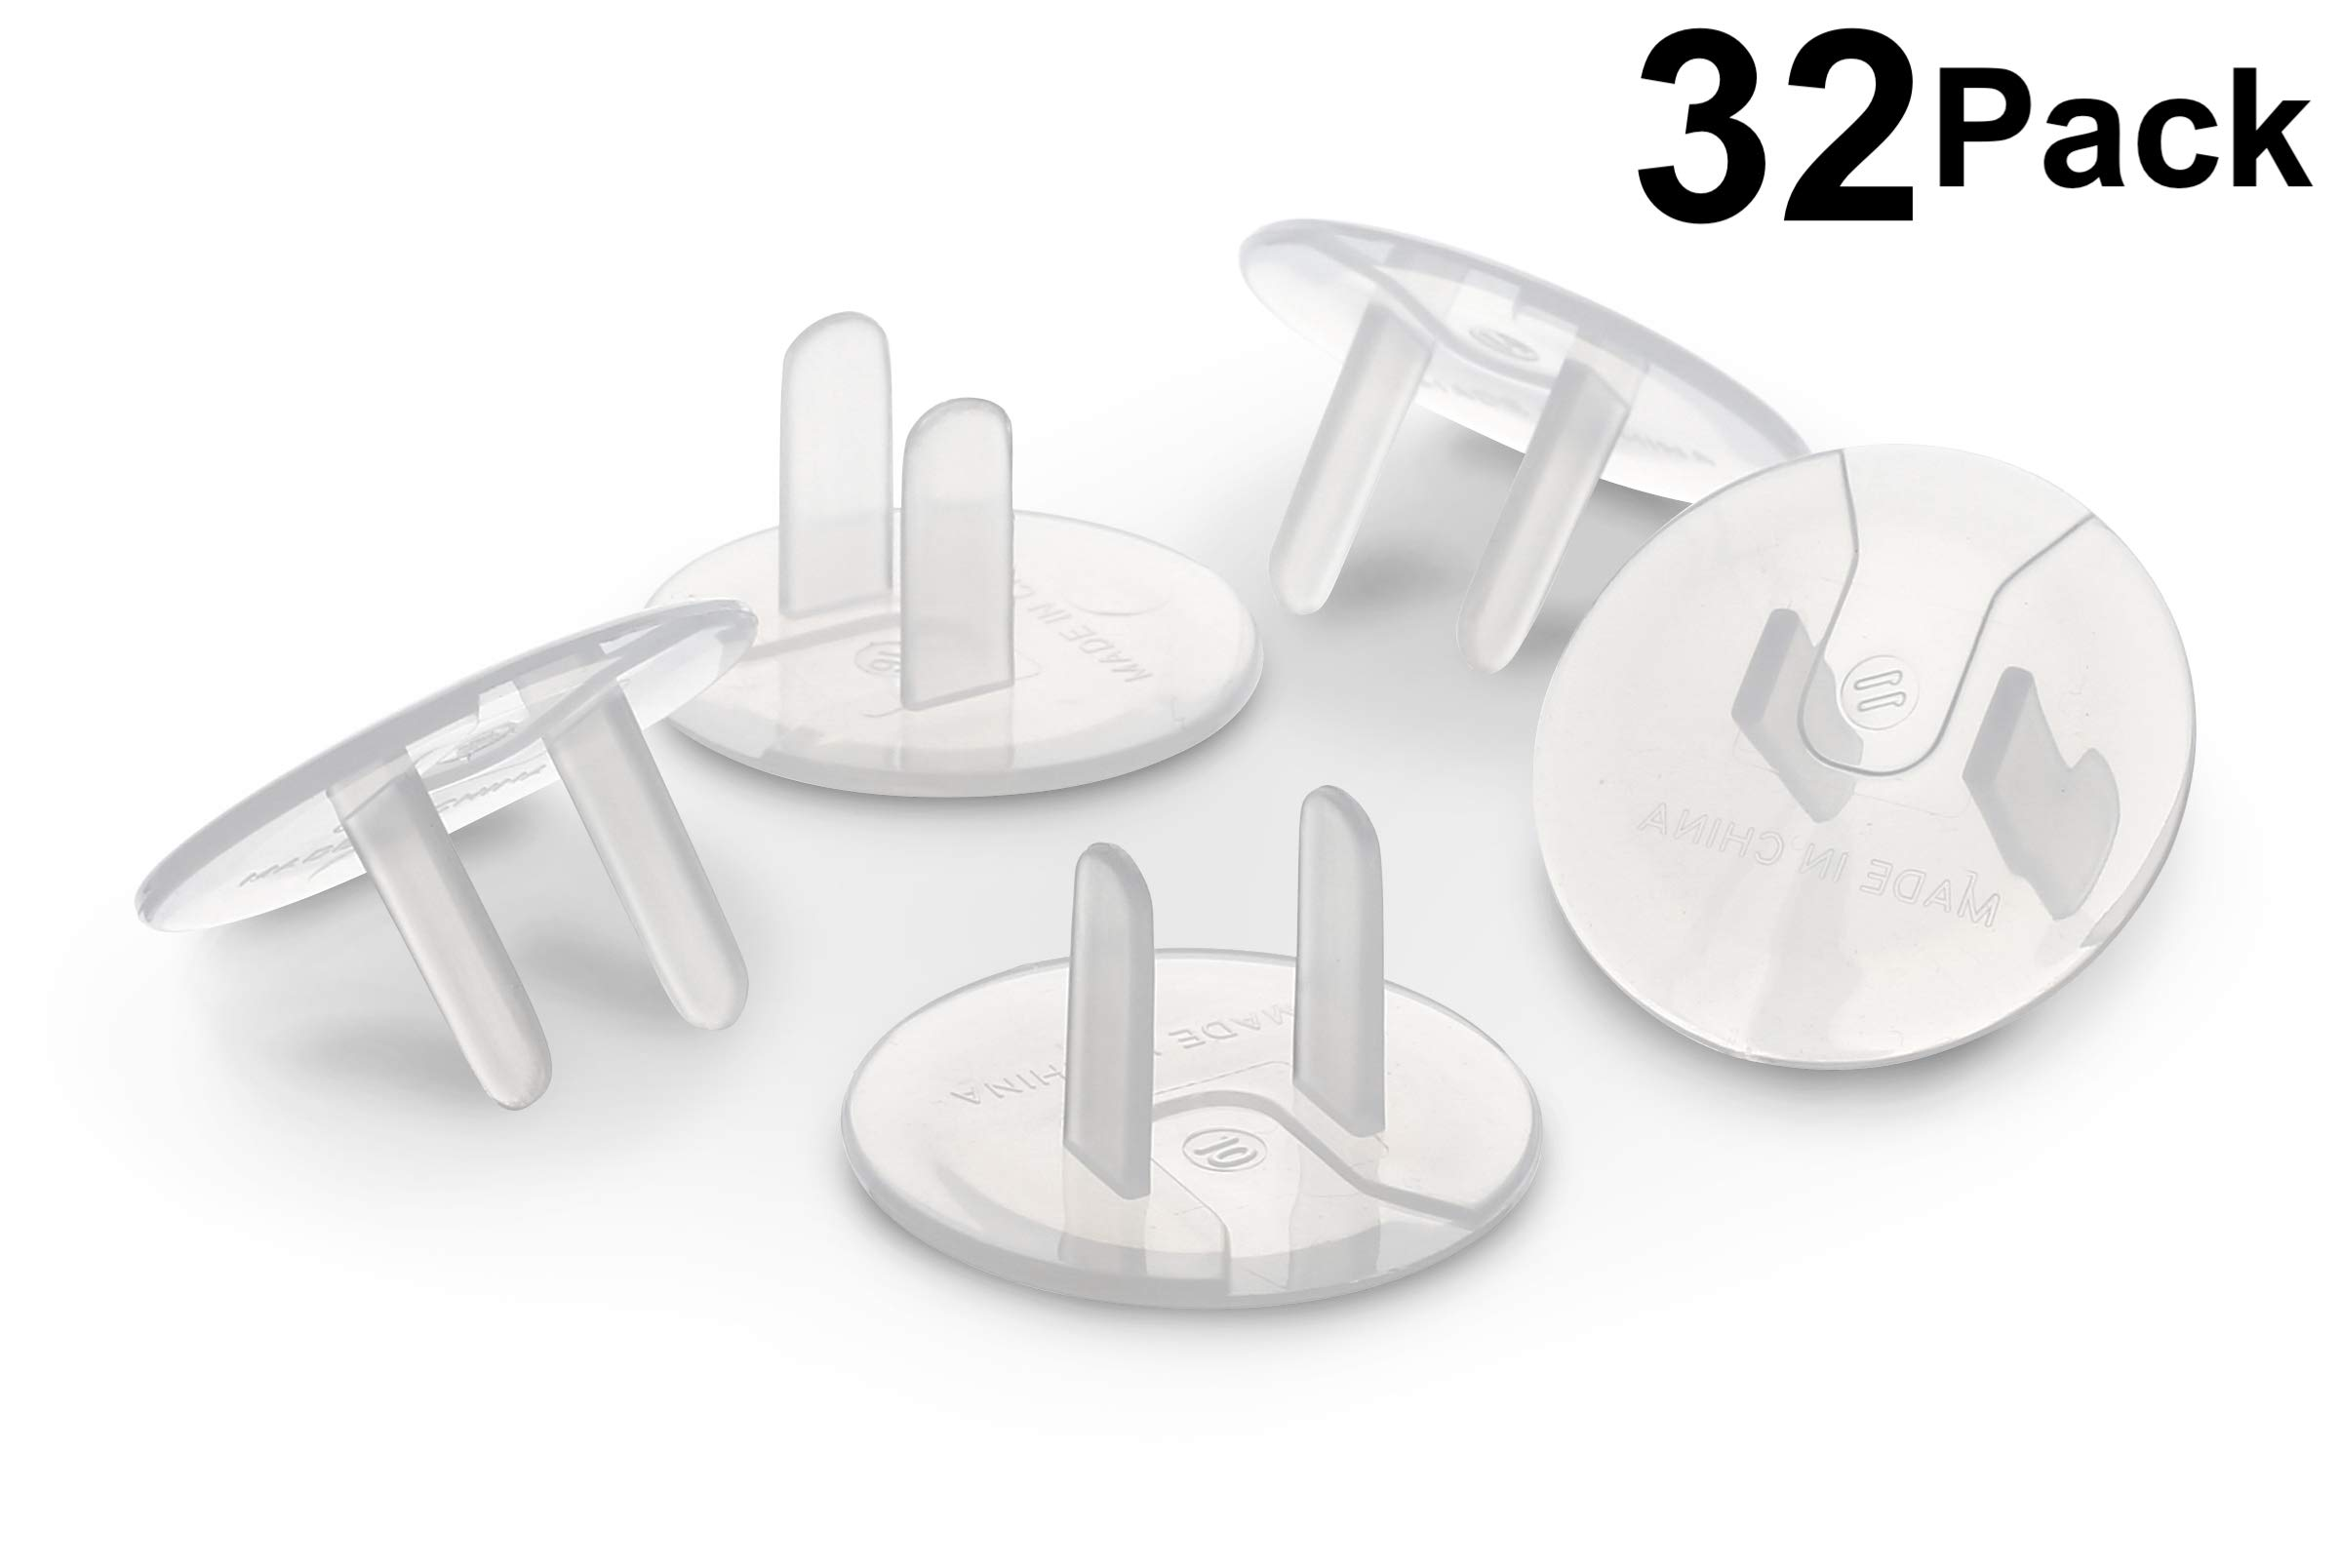 Outlet Plug Covers (32 Pack) Clear Child Proof Electrical Protector Safety Caps by Jool Baby Products